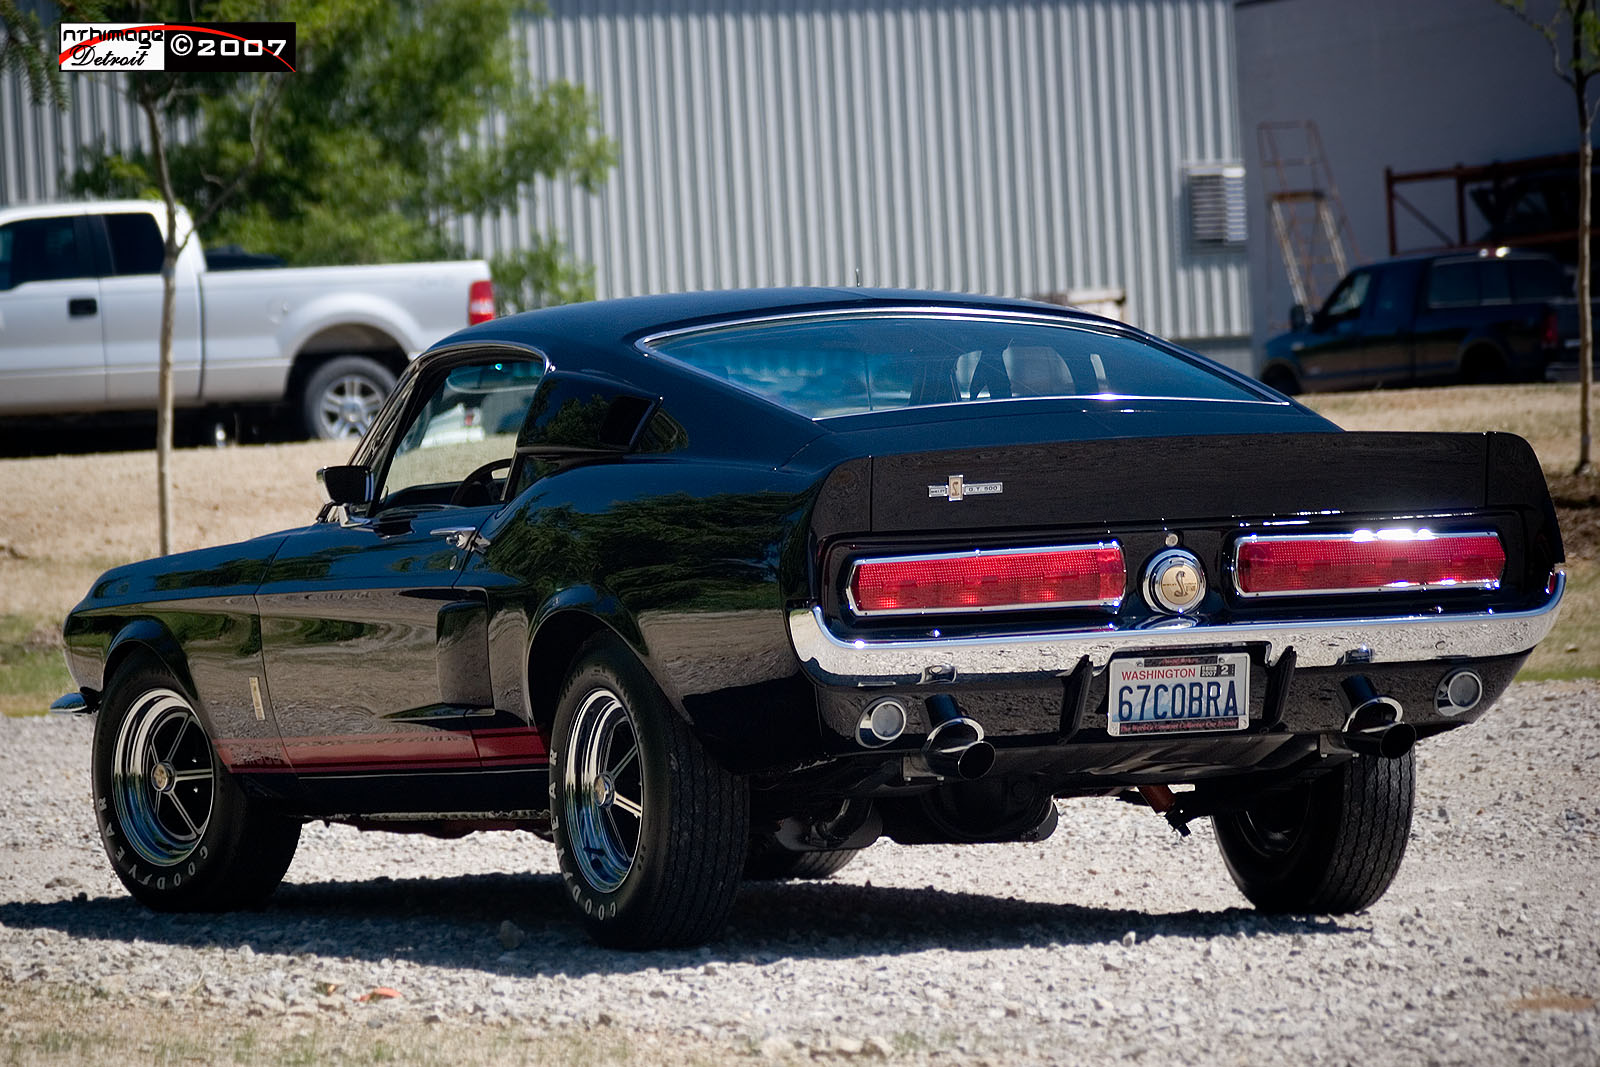 1967 ford shelby mustang gt500 on pinterest ford shelby mustang gt500 and shelby mustang. Black Bedroom Furniture Sets. Home Design Ideas